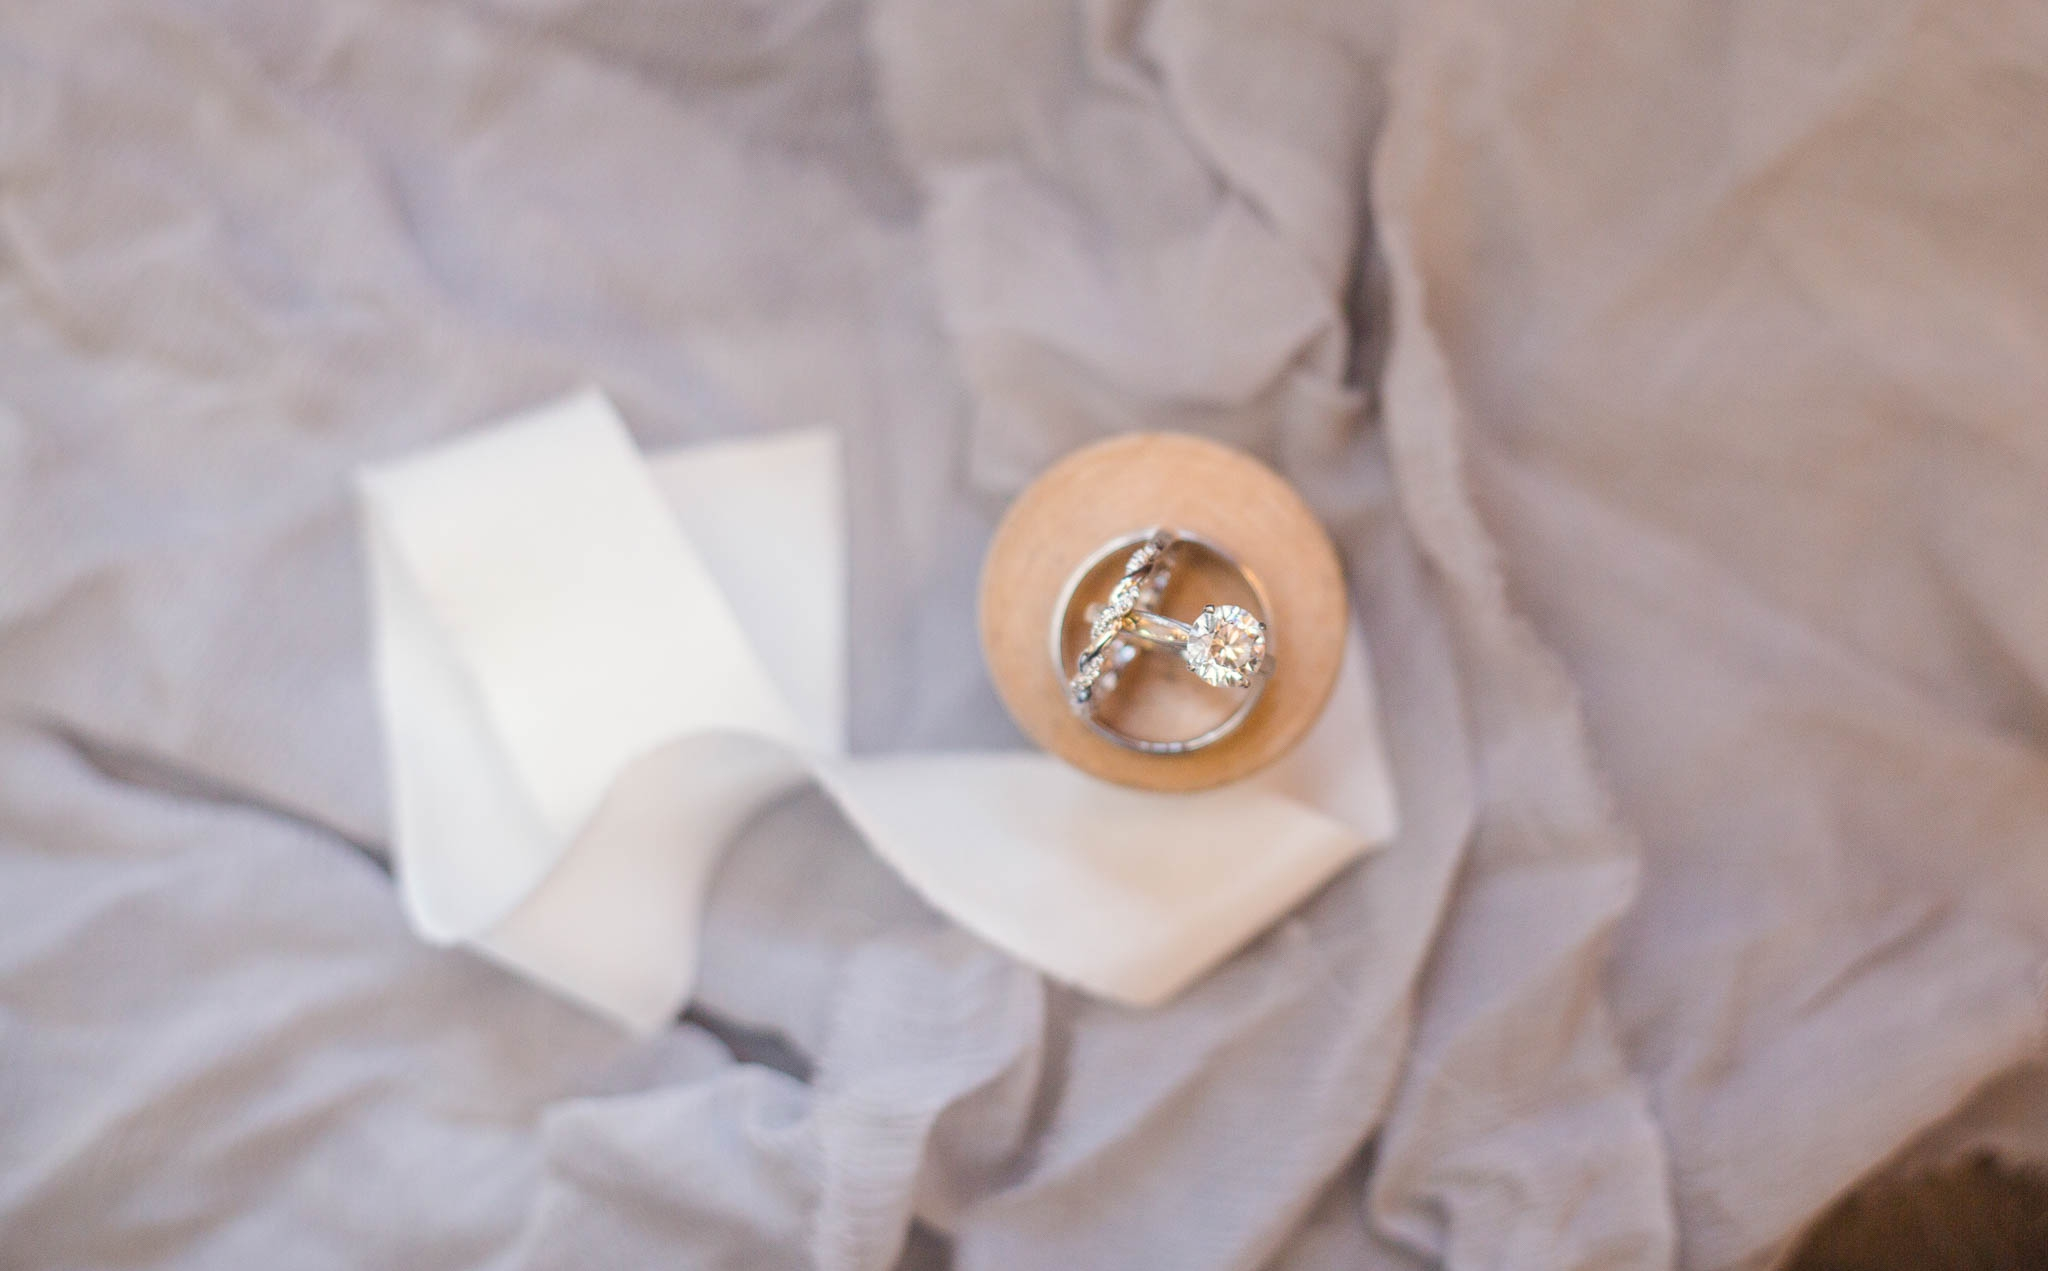 Wedding Ring Shot - Dona + Doug - MacGregor Downs Country Club in Cary, NC - Raleigh Wedding Photographer